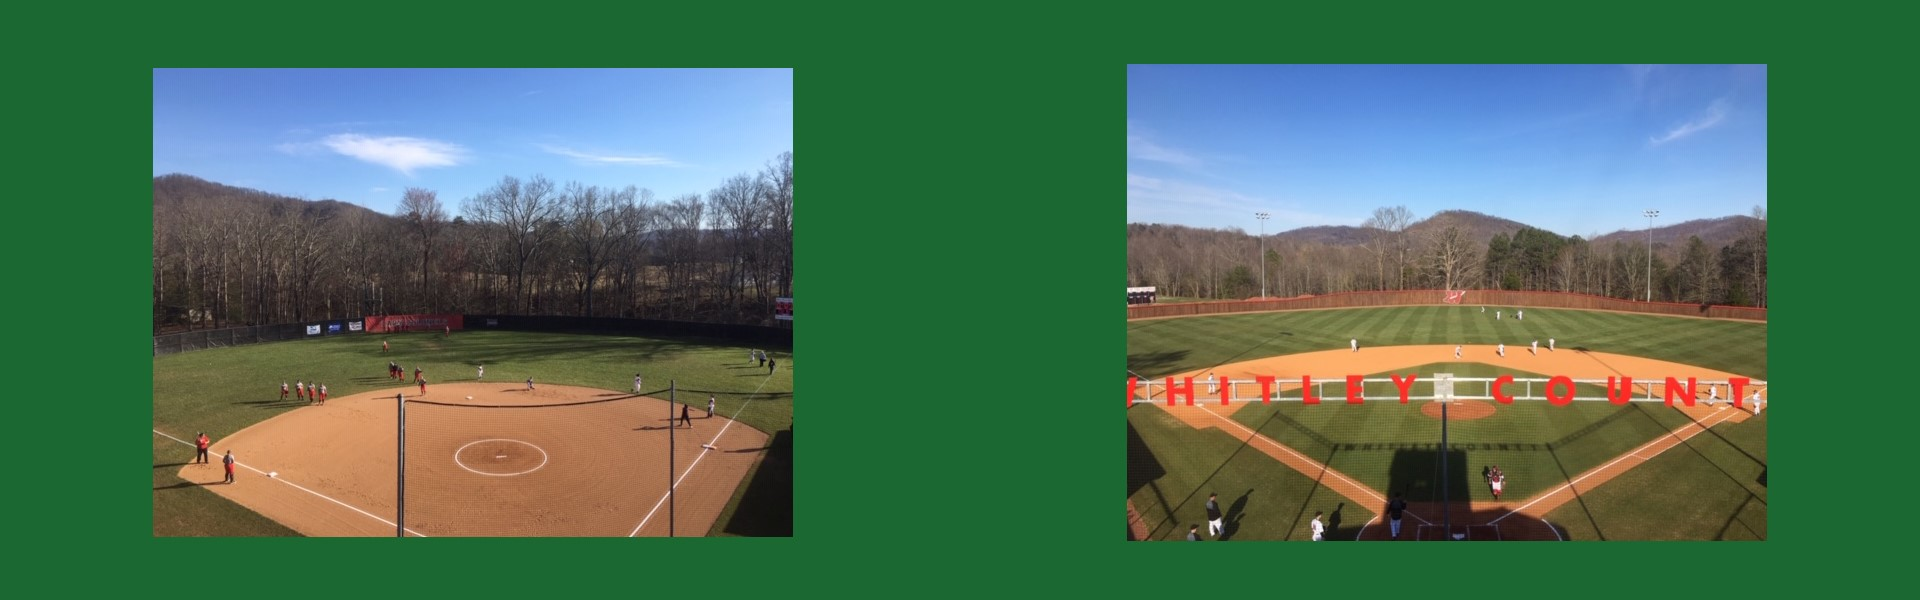 WCHS Softball and Baseball Opening Day